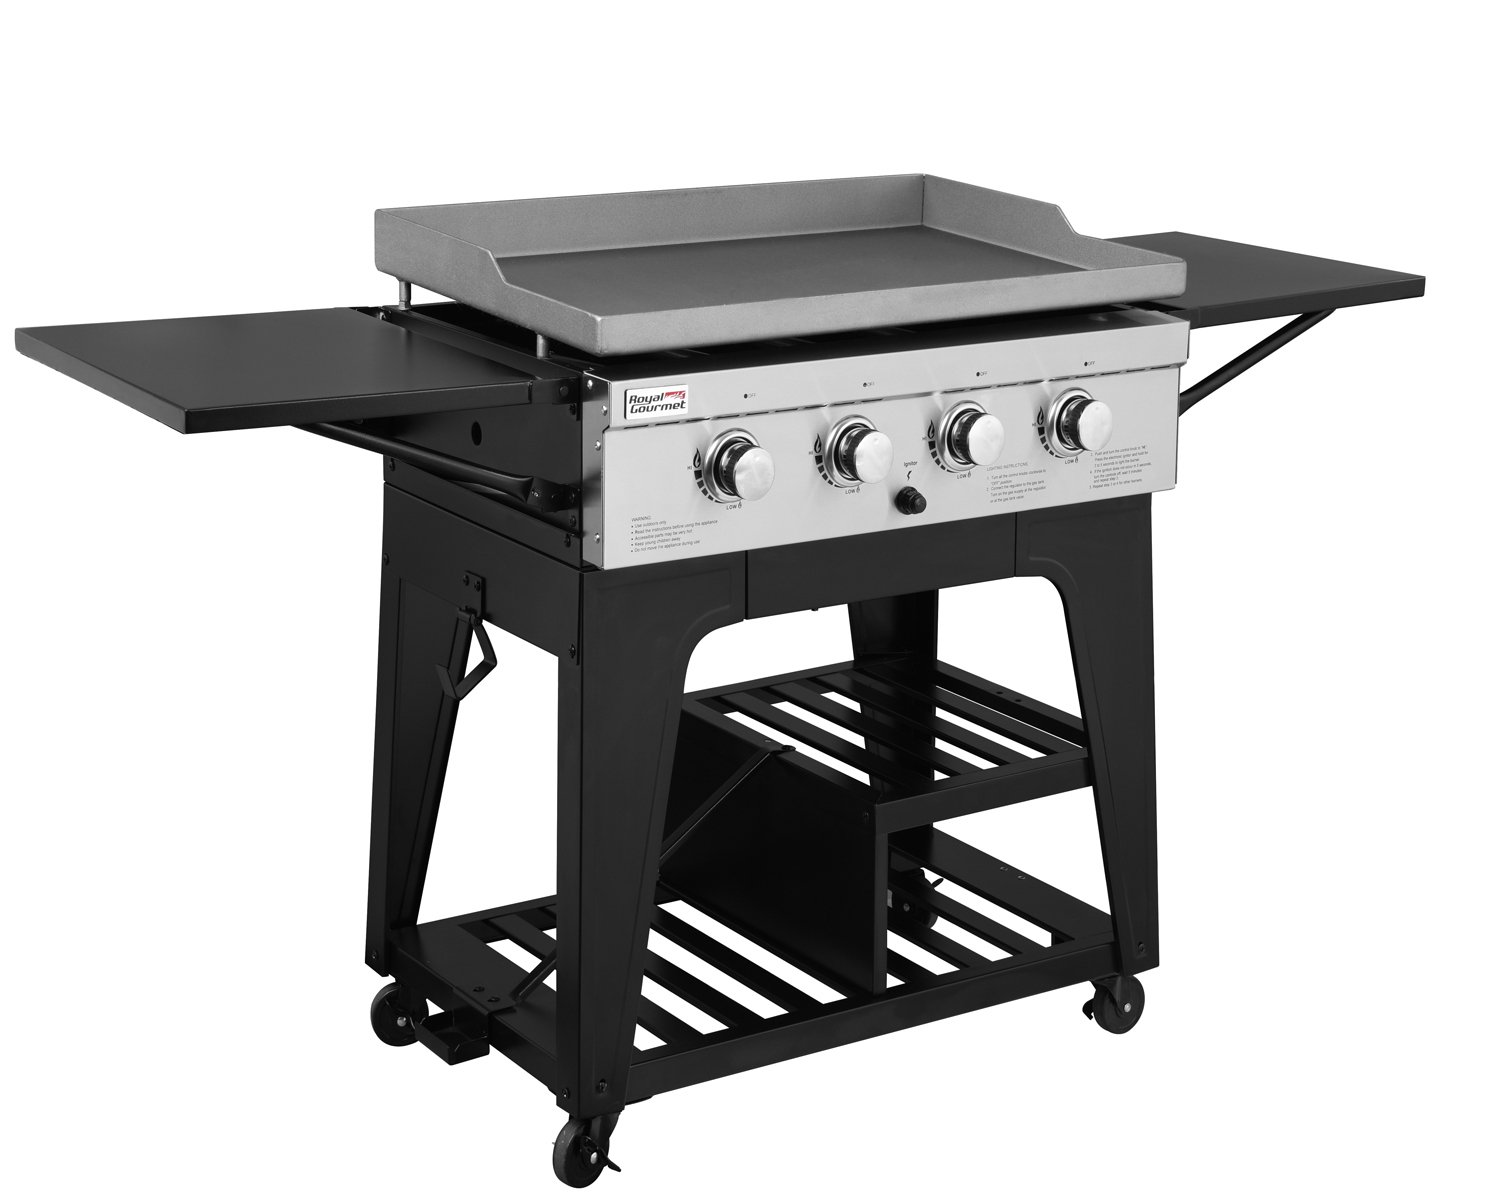 Amazon.com: RoyalGourmet Regal parrilla de gas propano ...